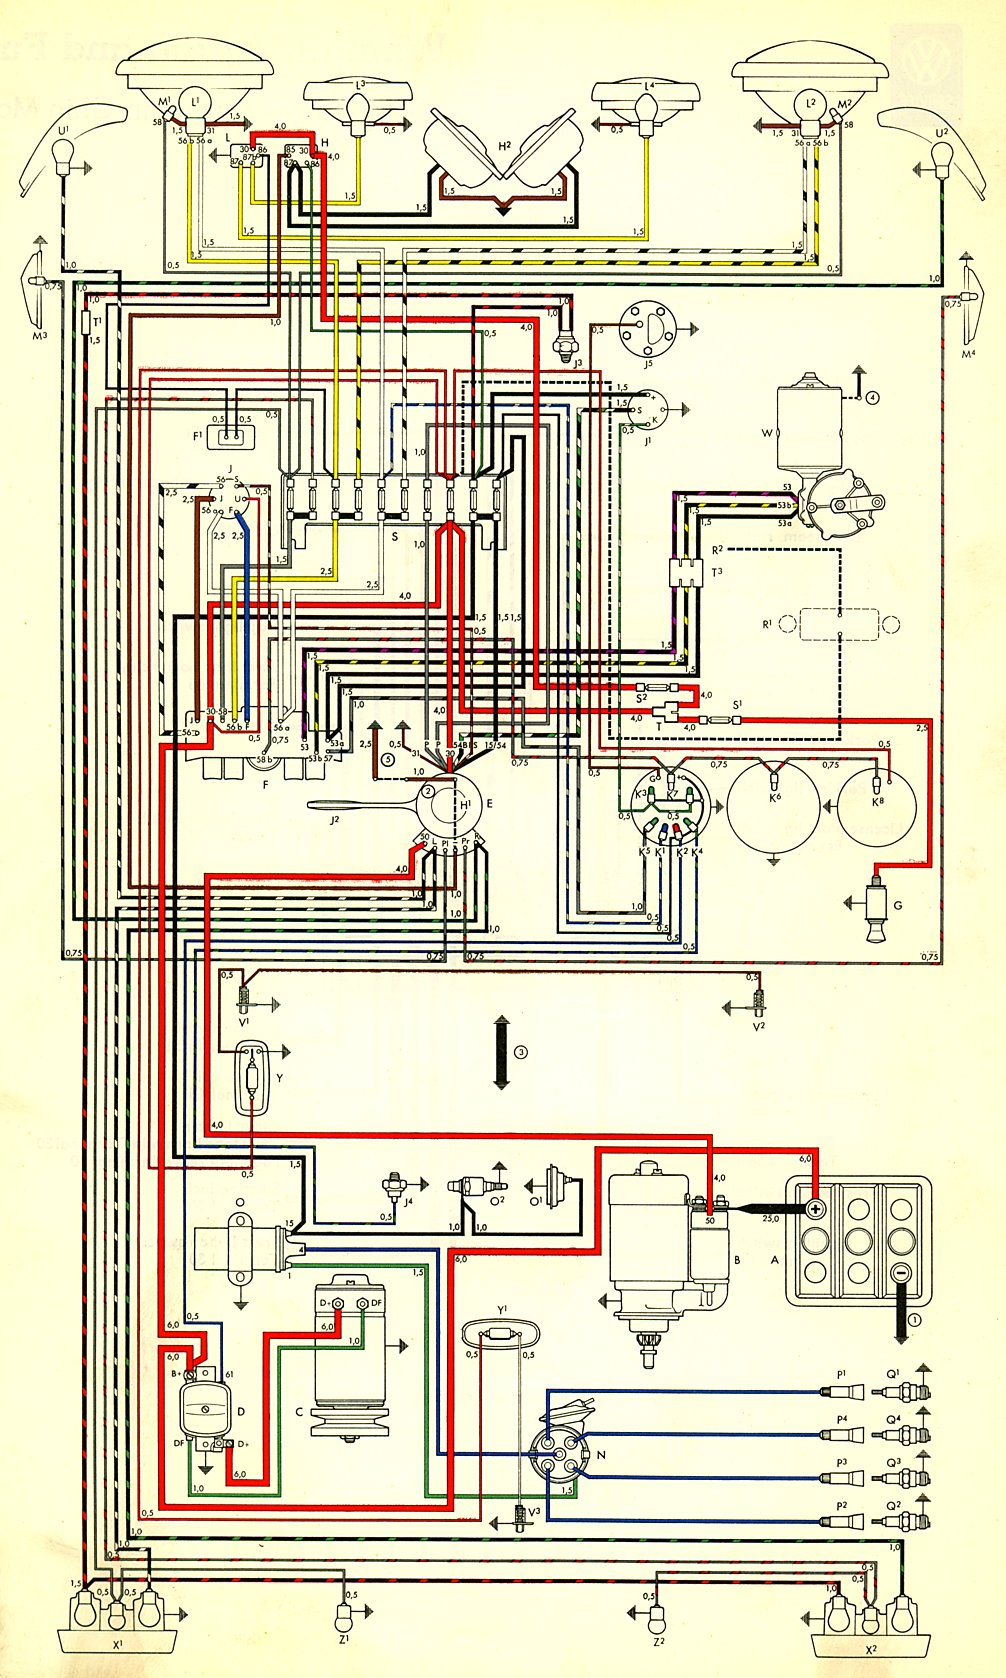 thesamba com type 3 wiring diagrams rh thesamba com VW Ignition Wiring Diagram 1969 VW Bus Wiring Harness